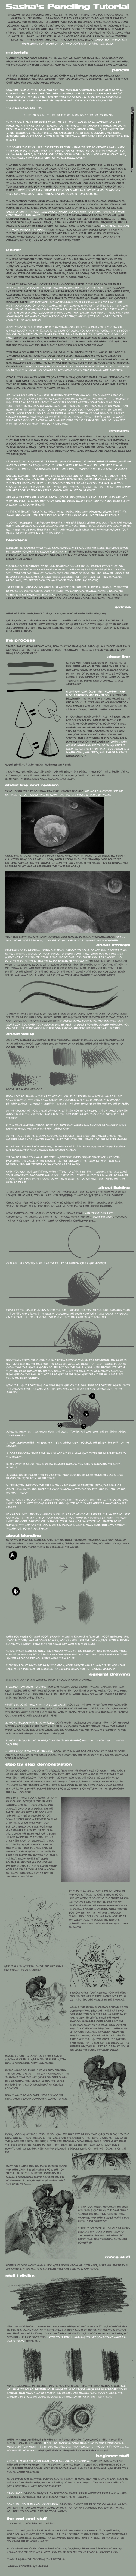 The Penciling Tutorial by sashas